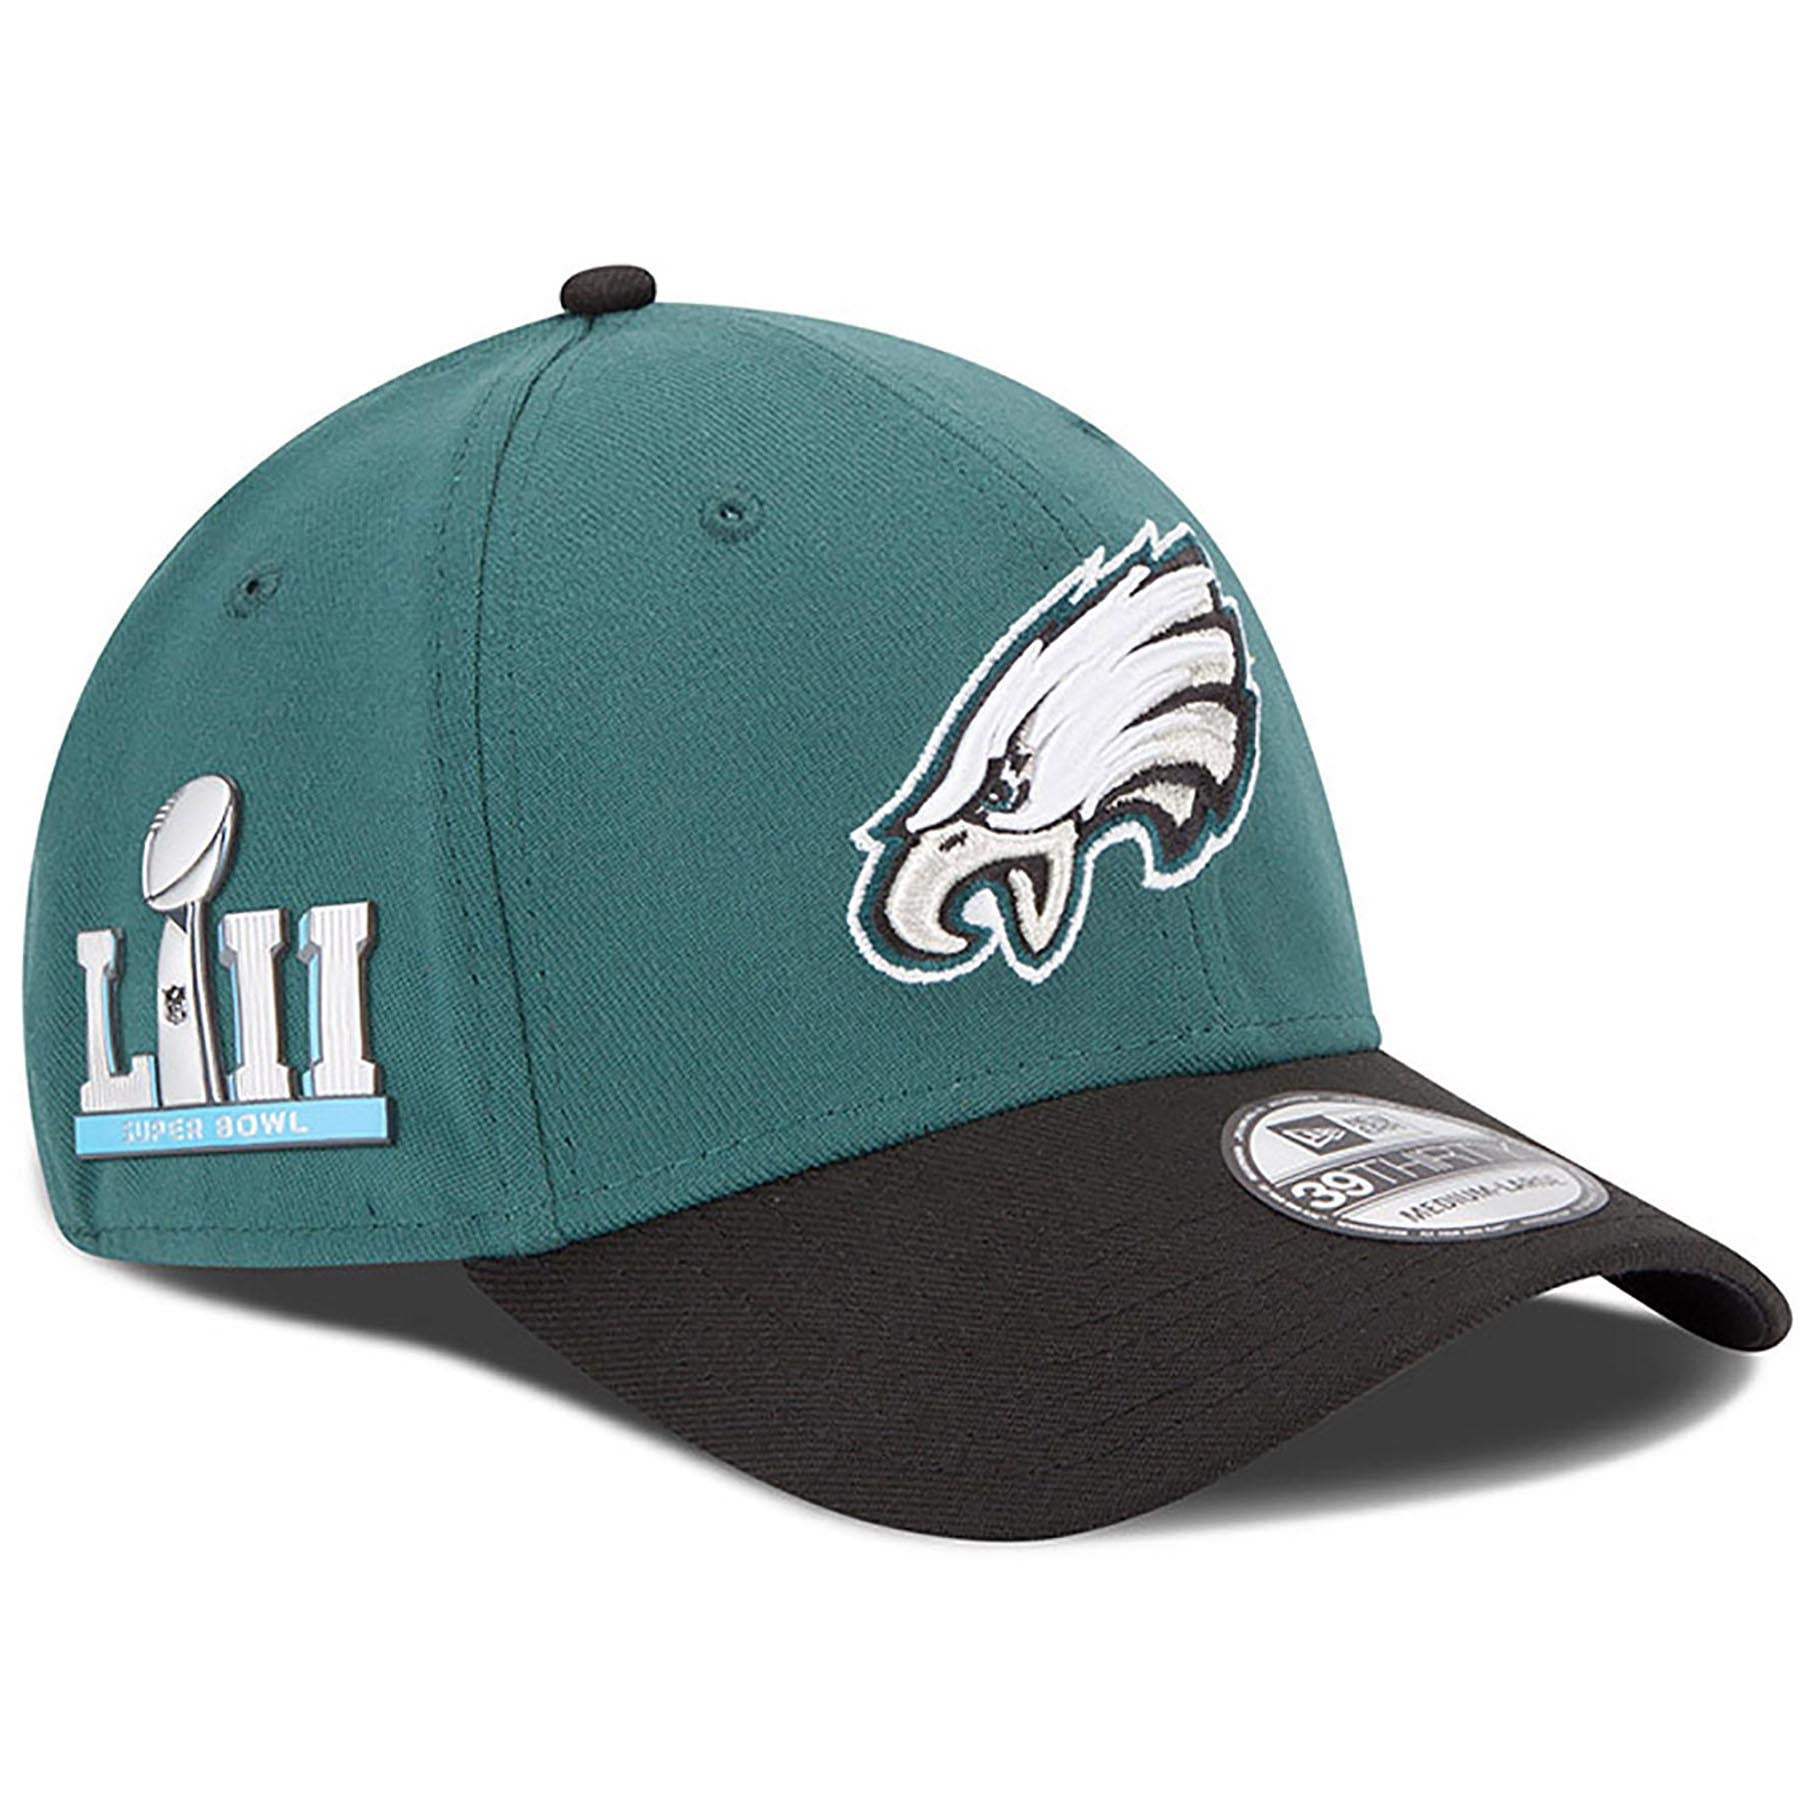 detailed look afaf3 04359 the right side of the Philadelphia Eagles Superbowl LII stretch fit cap has  the superbowl LII